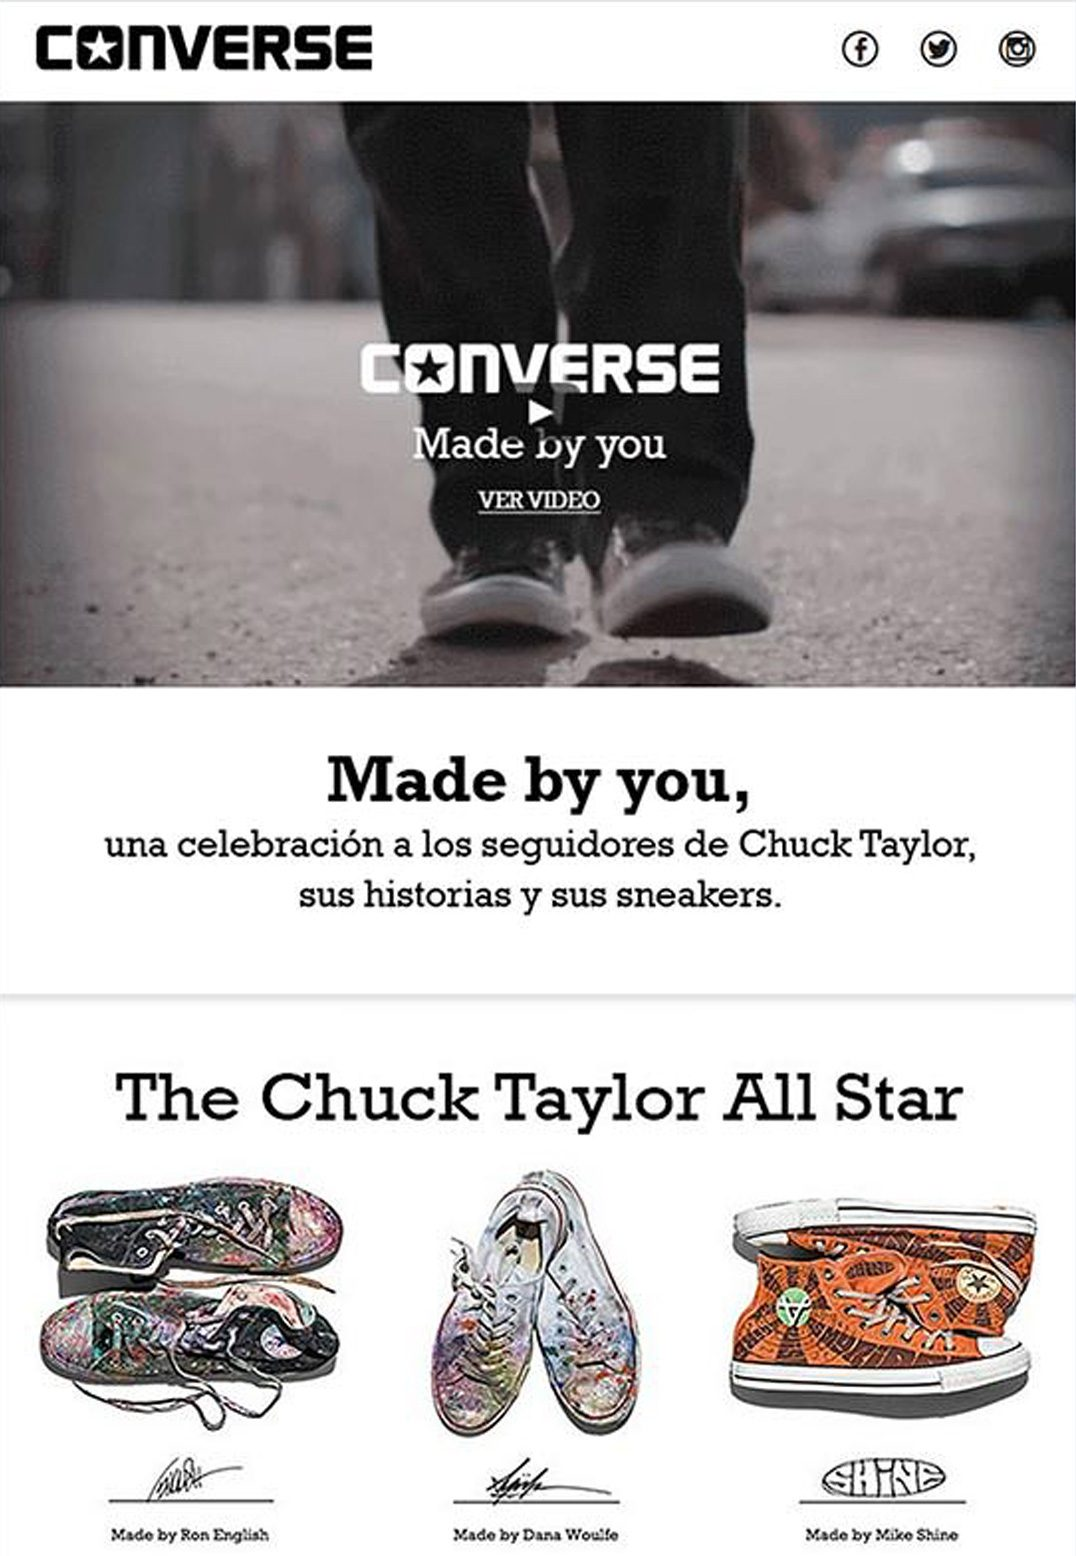 Here's an example from Converse. Their email newsletters include video—and it's the first thing that jumps out at you.